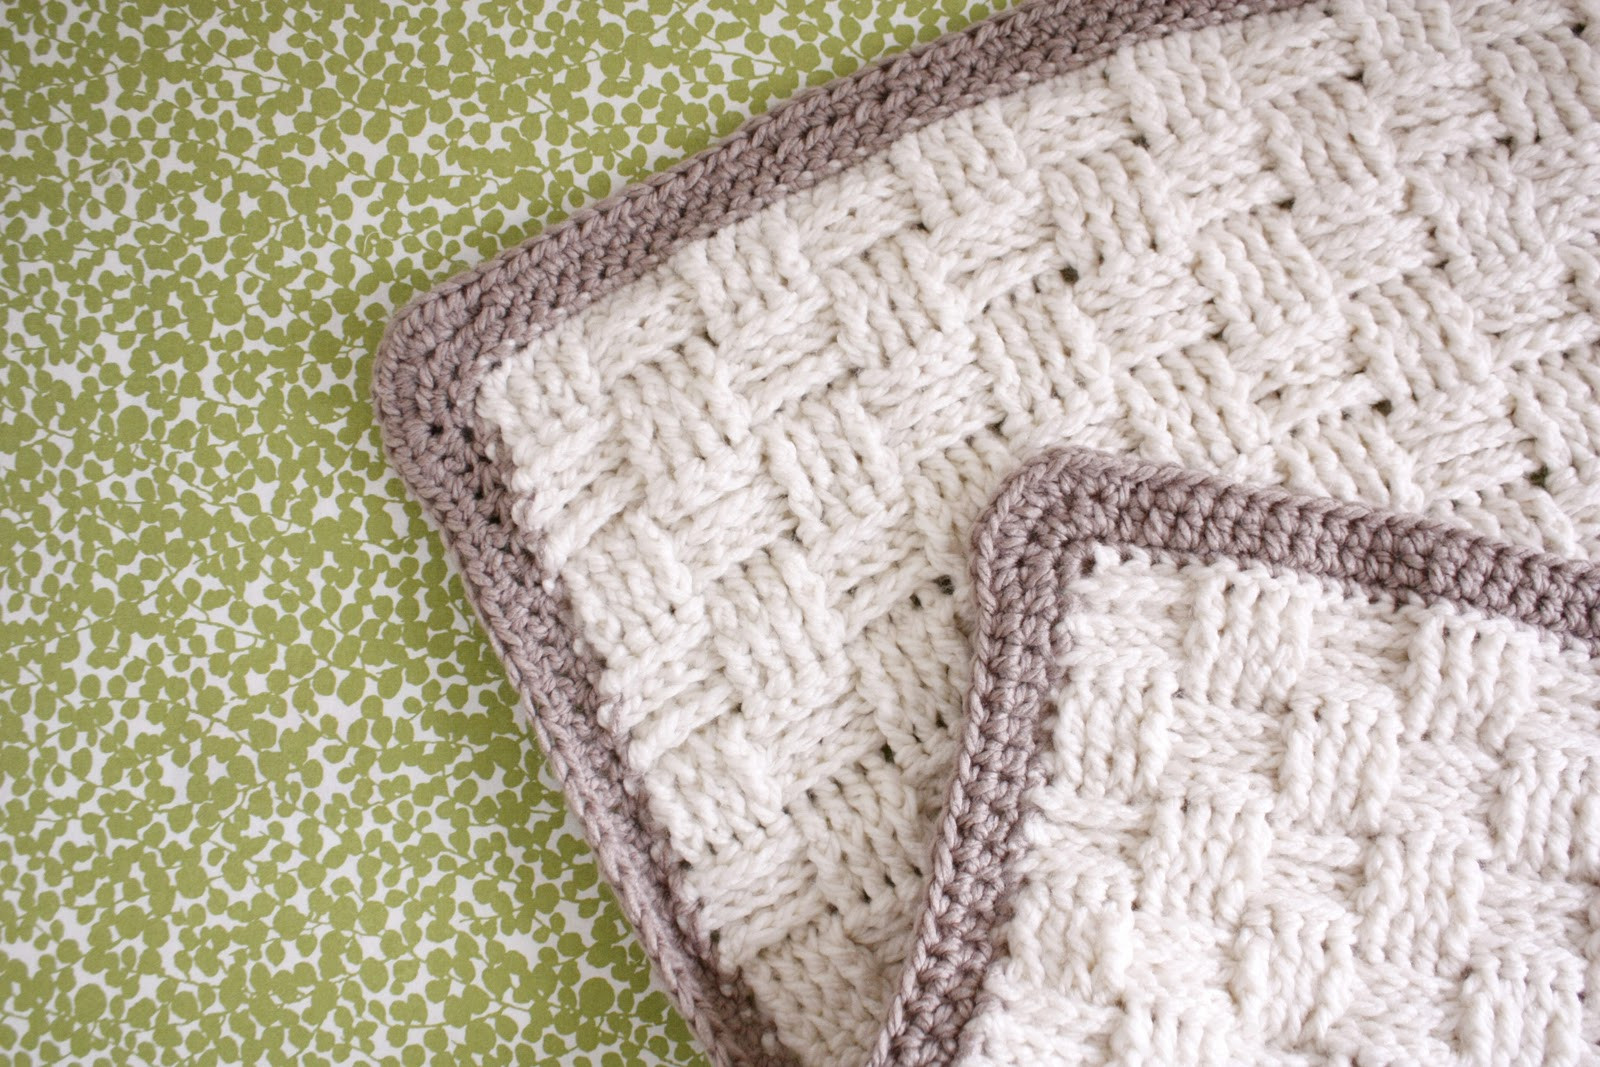 Crochet Baby Blanket Awesome Nesting Basket Weave Crochet Baby Blanket Of Great 49 Pictures Crochet Baby Blanket